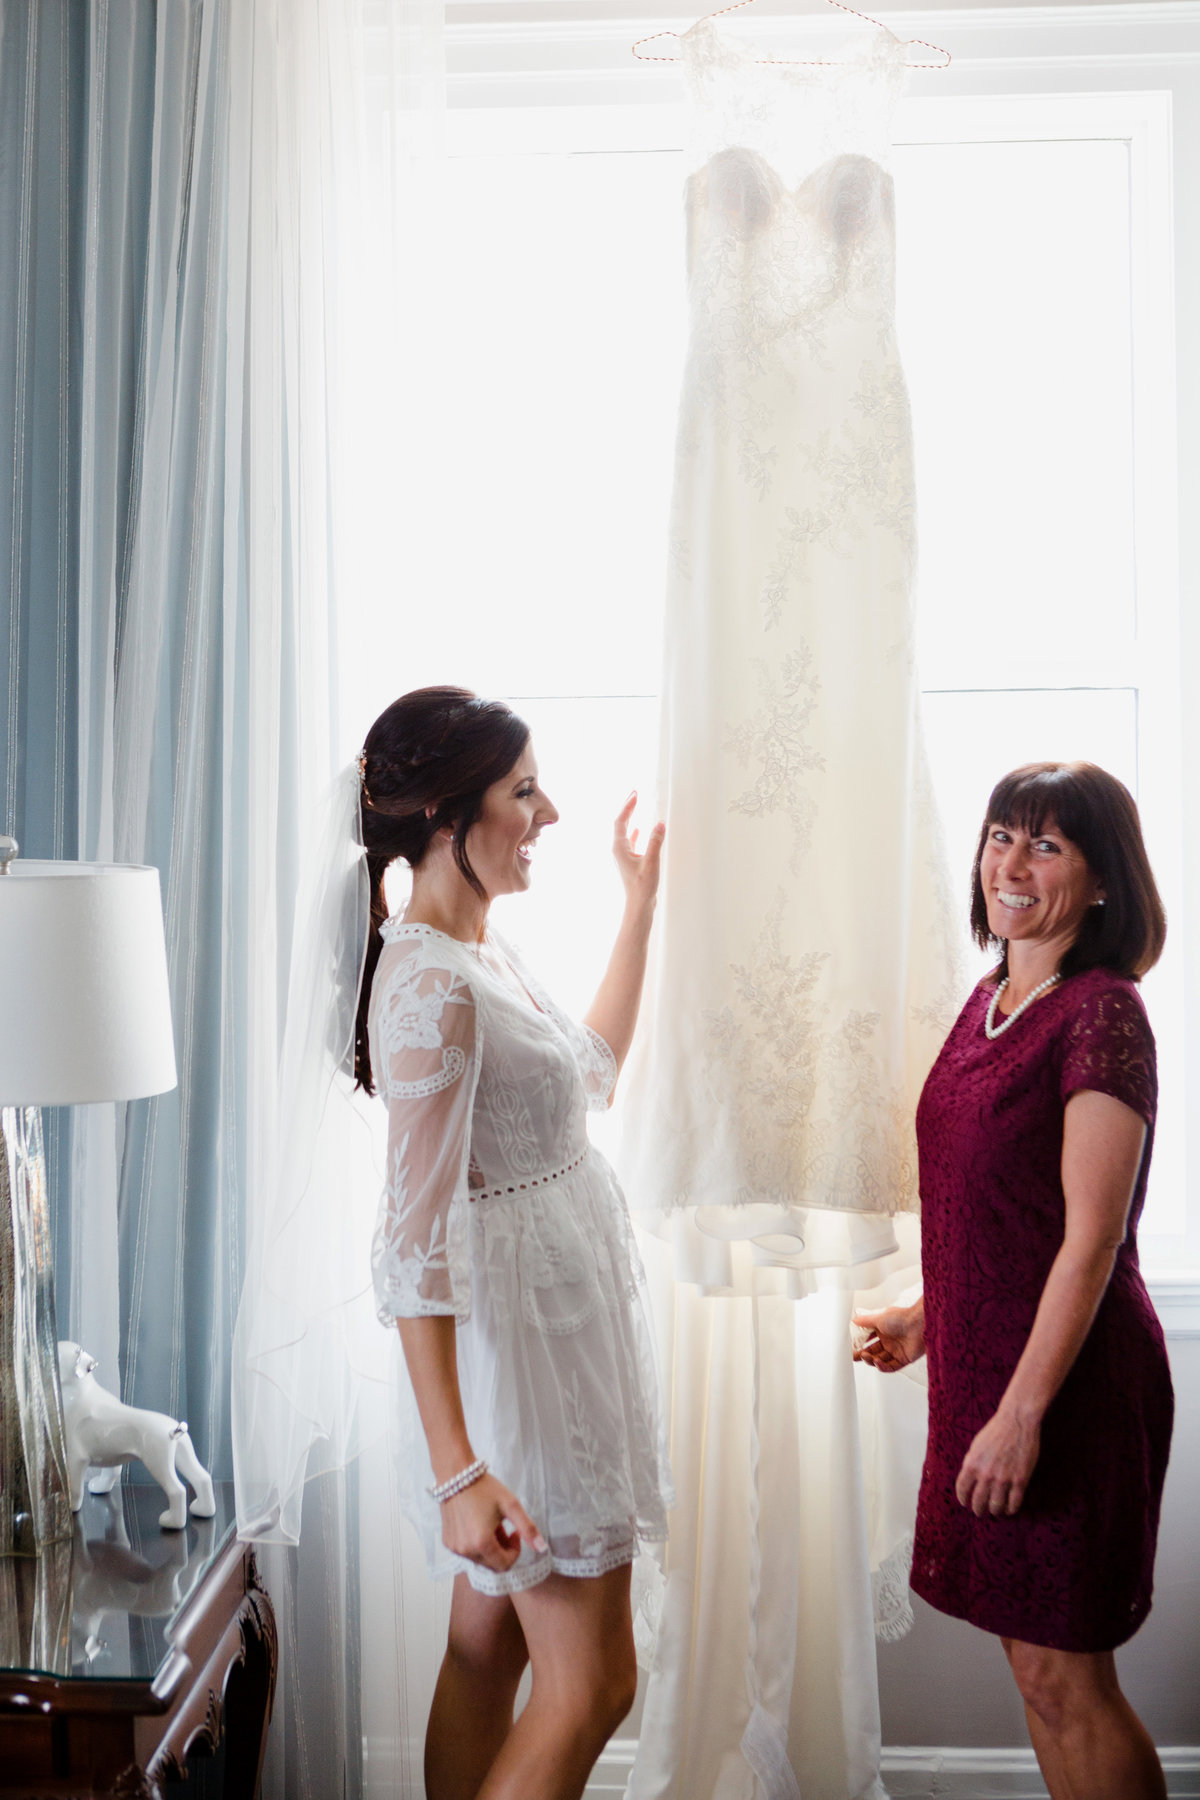 Mother of the bride and bride looking at wedding dress